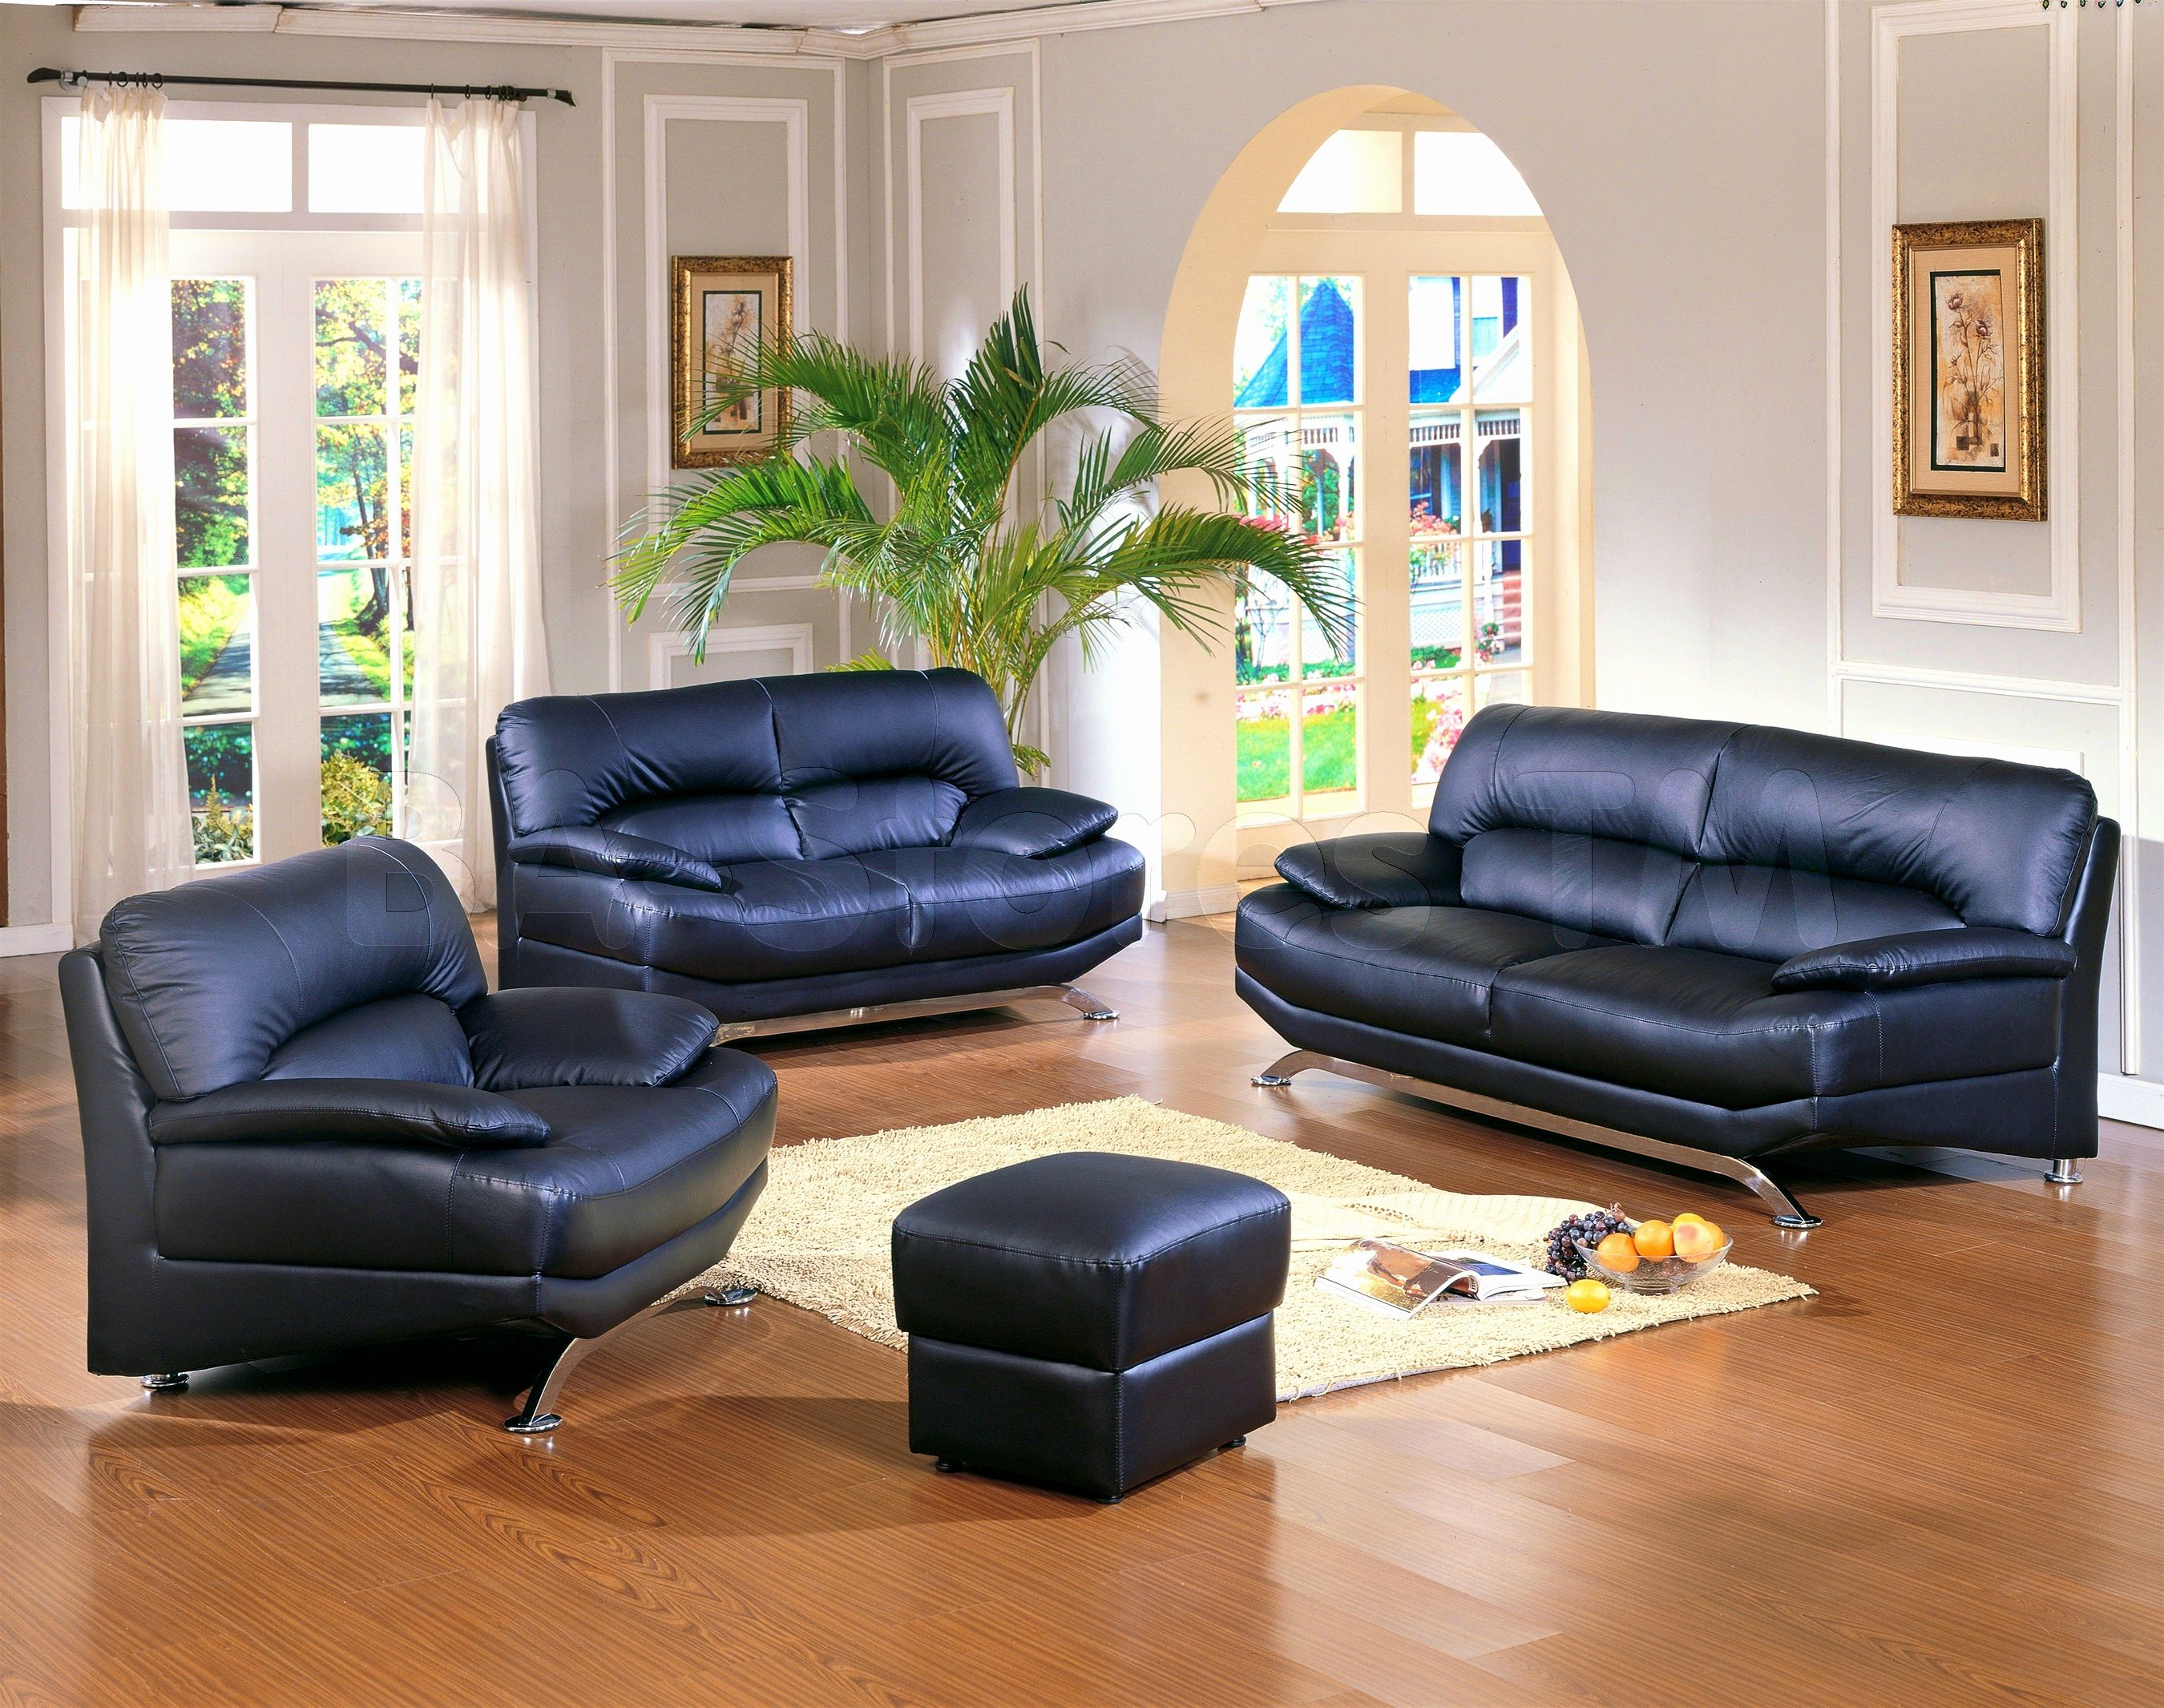 Awesome Living Room With Leather Sofa Image Living Room